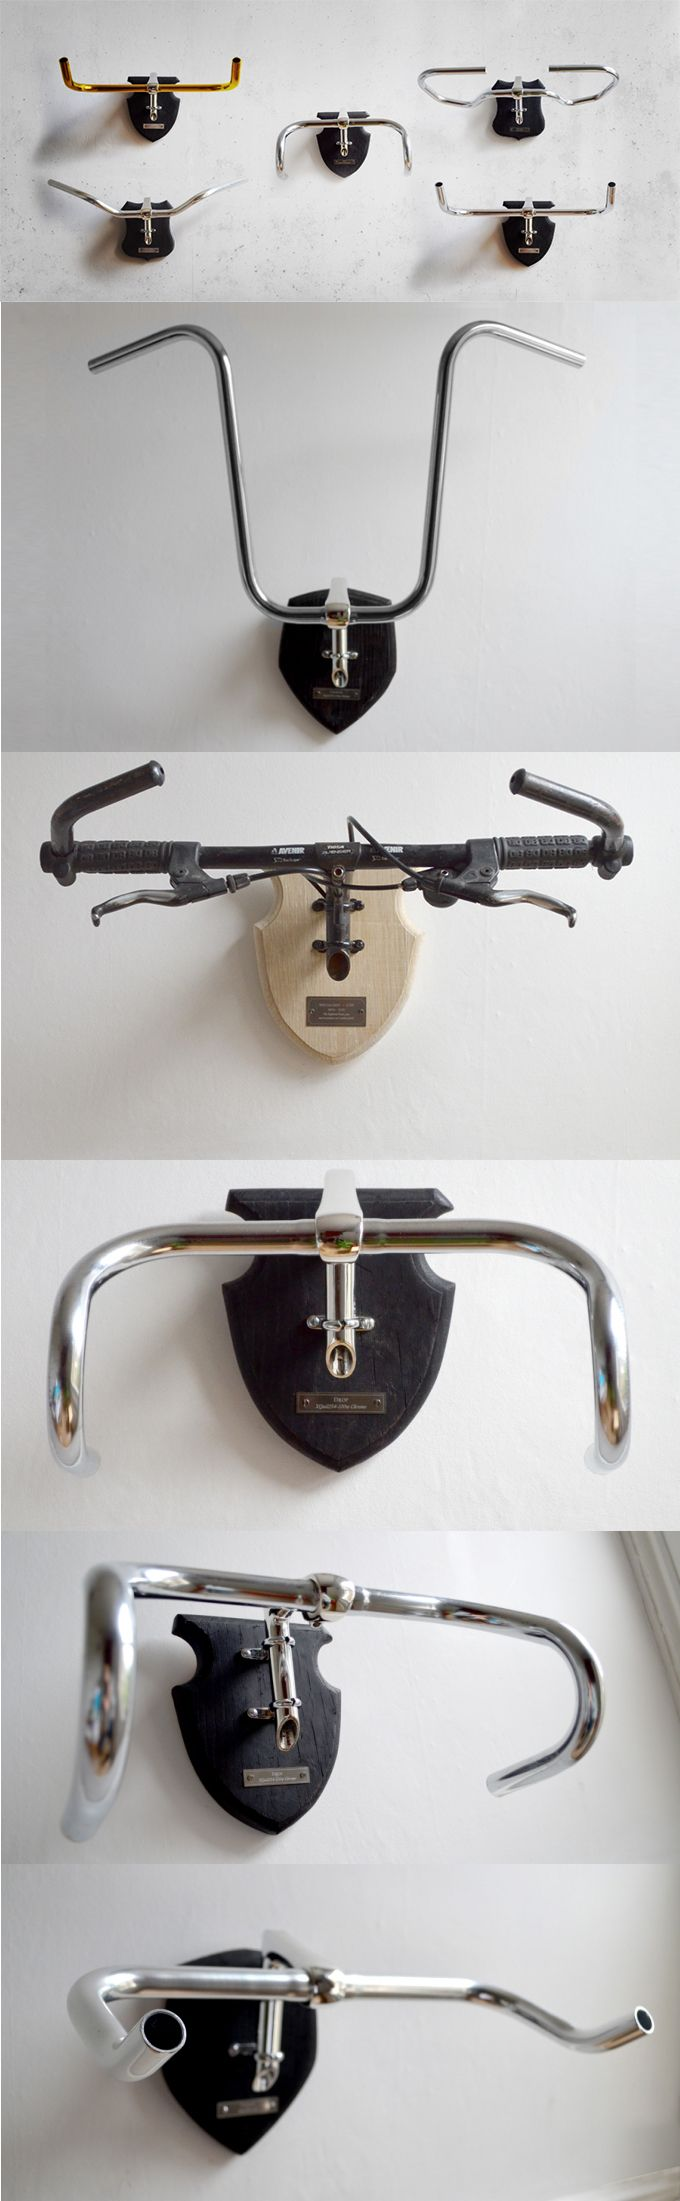 The loving and lasting solution for your mechanical bereavement! An eccentric side project born out of too many sleepless nights at the Royal College of Art and a homesickness for the rugged Highlands. Bicycle Taxidermy first began on a couple of memento mori for my father's once prized but long discarded mountain and road bikes. http://bicycletaxidermy.com